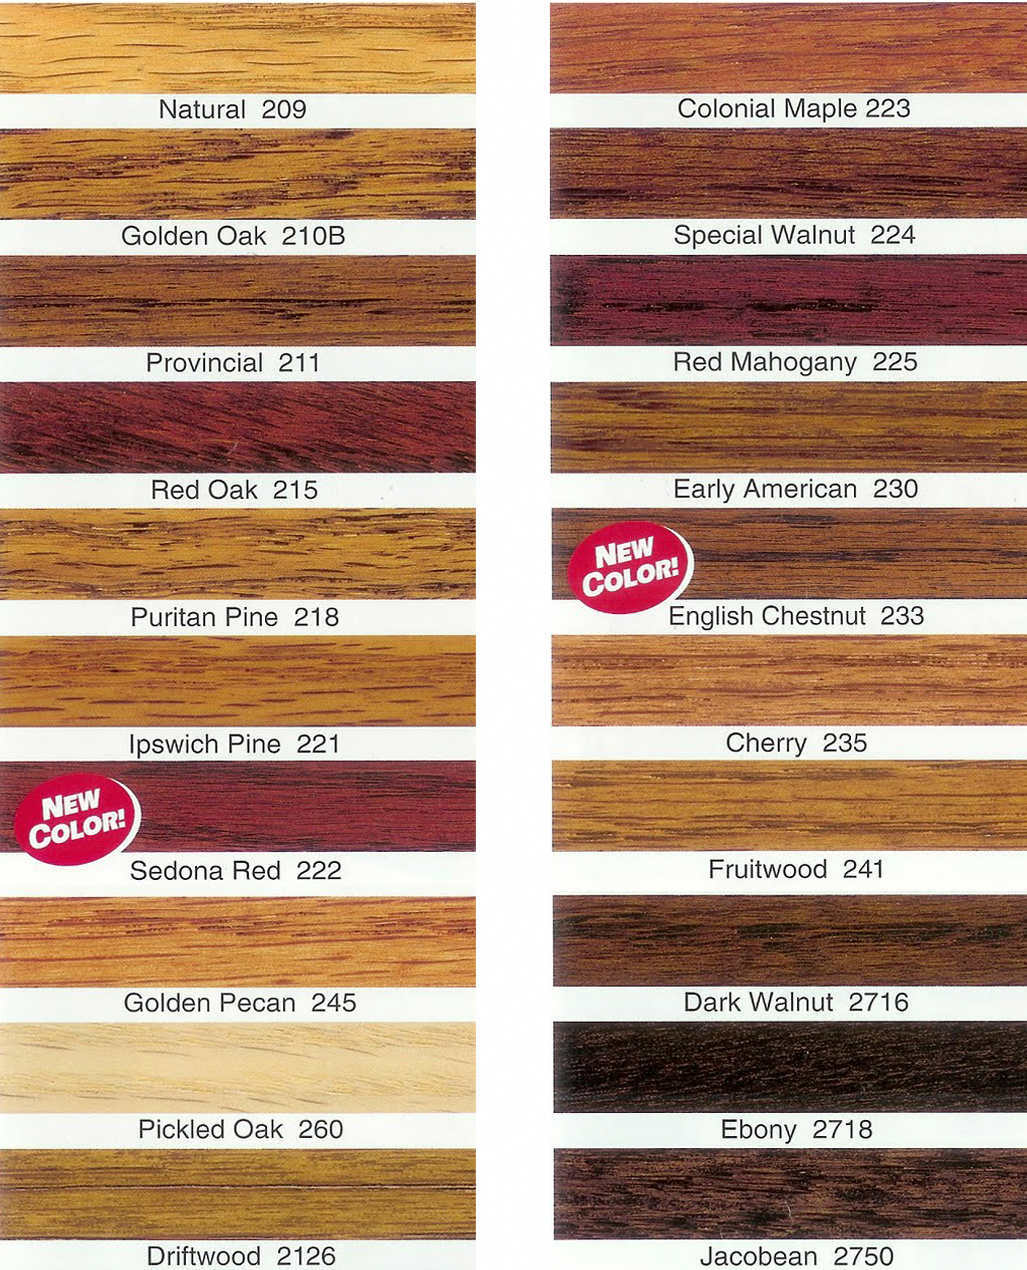 Hard Wood Flooring Stain Chart Hardwoodflooringlight In 2020 Minwax Stain Colors Reclaimed Wood Dining Table Rustic Floating Shelves